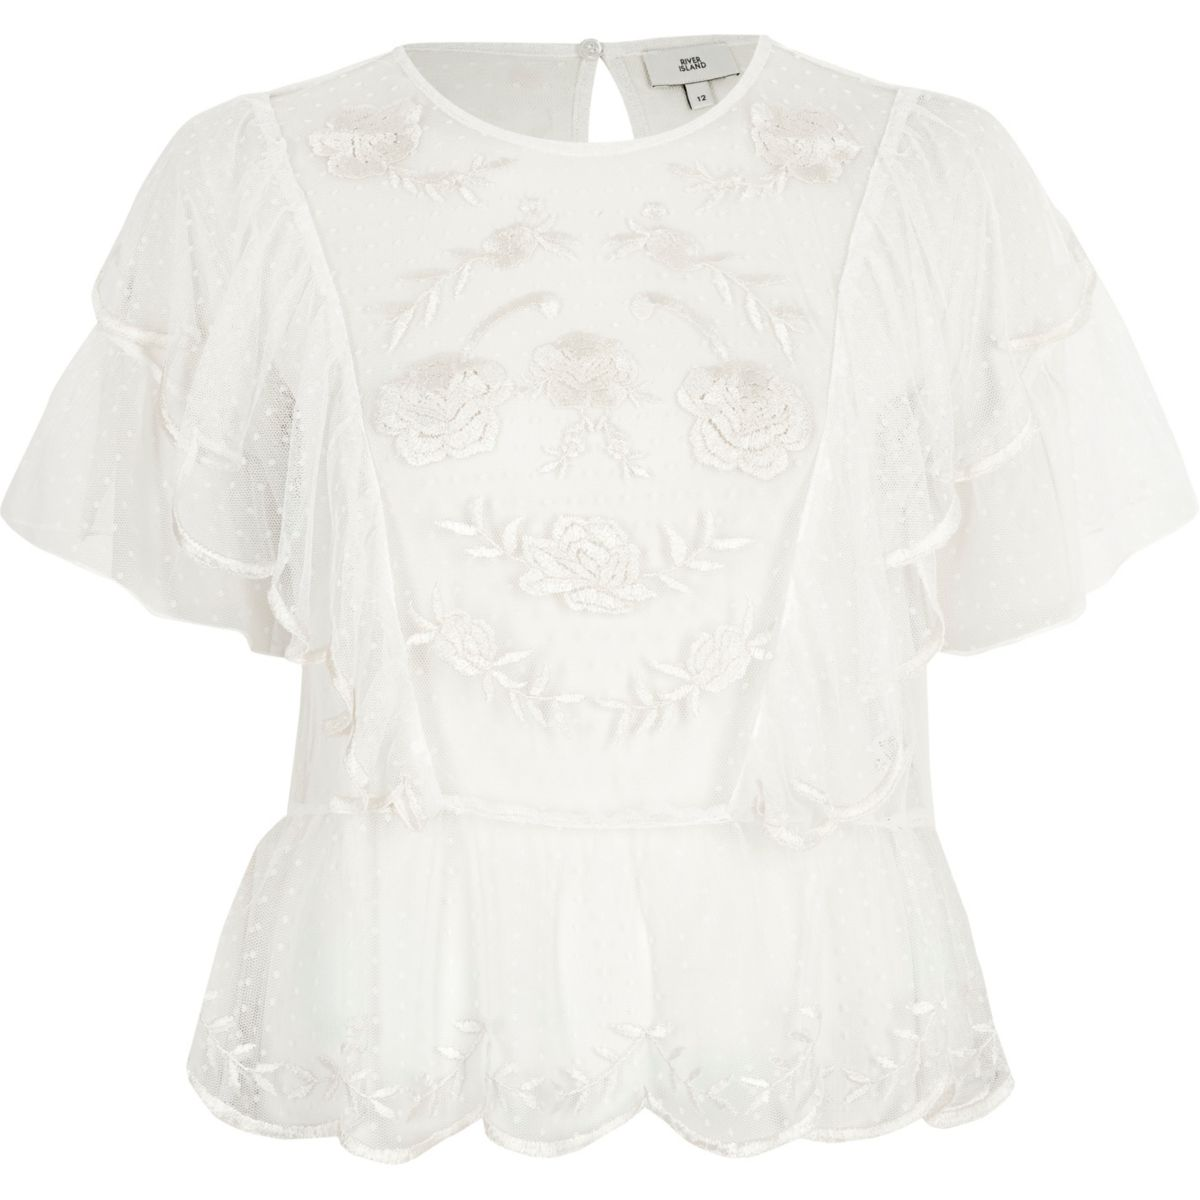 White dobby mesh embroidered frill top